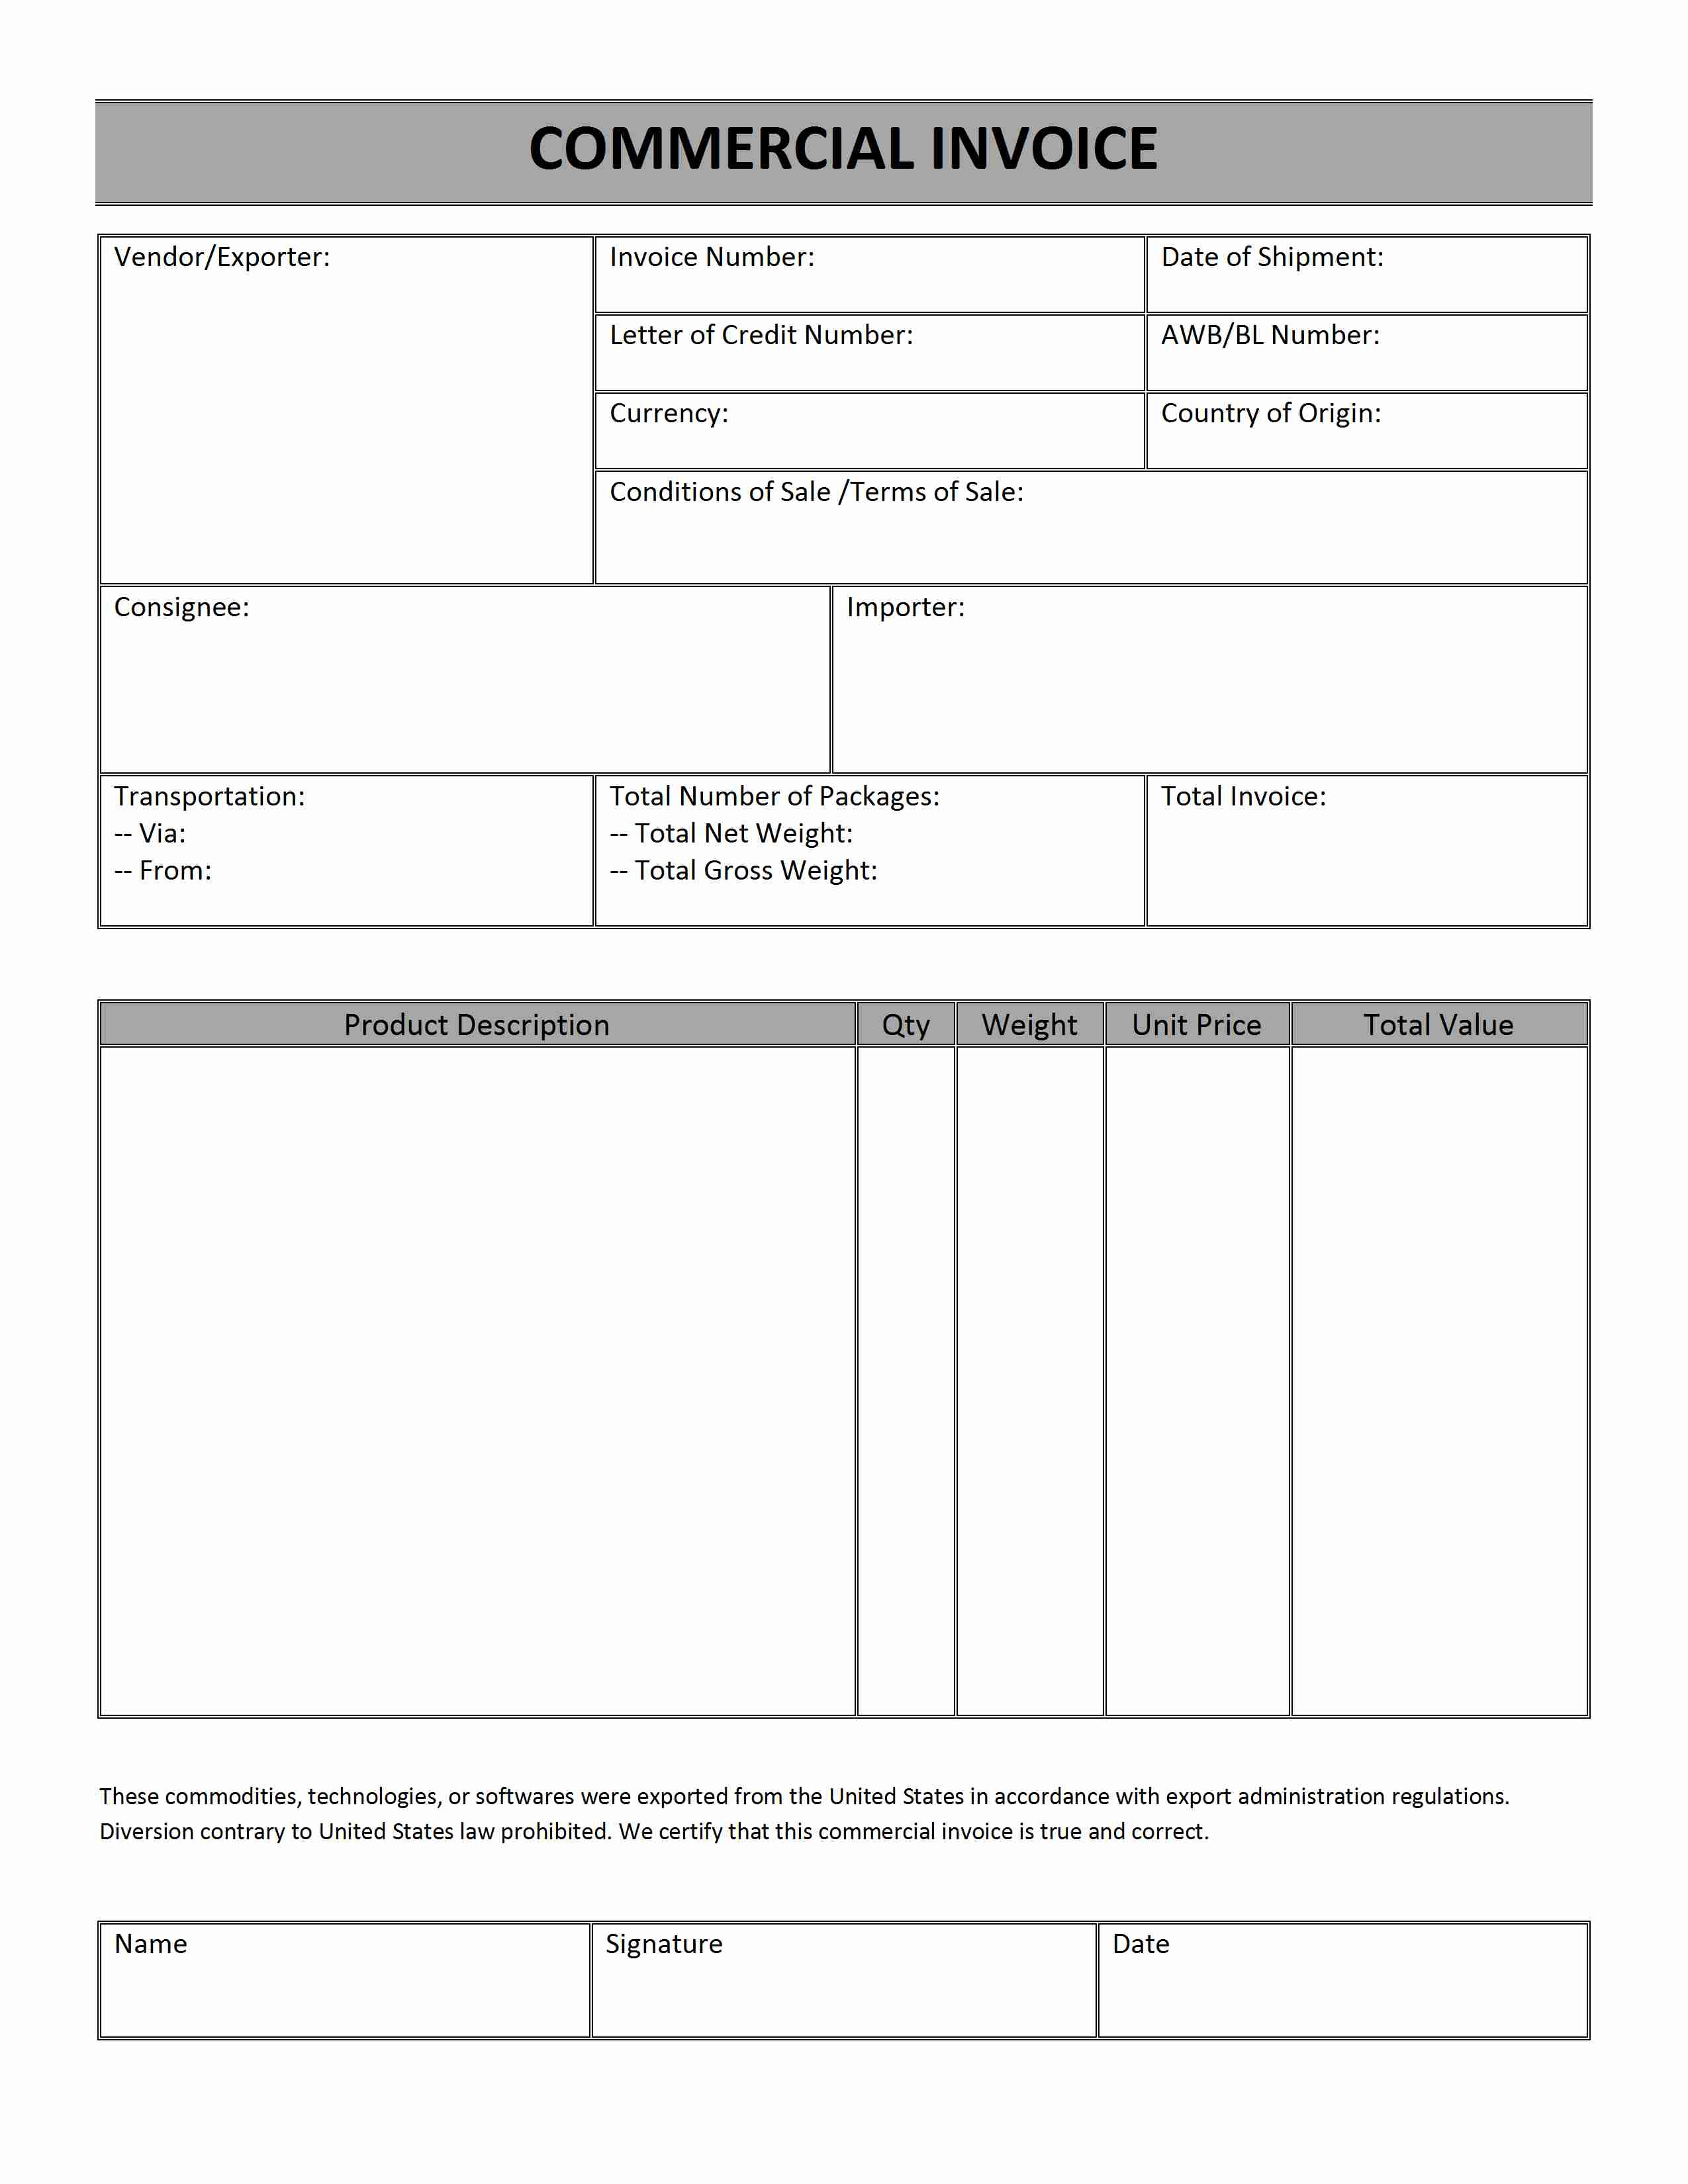 Reliefworkersus  Splendid Printable Sales Invoice Simple Invoice Form Free Invoice  With Entrancing Printable Receipt Free  Free Printable Raffle Tickets  Receipt   Printable With Alluring Valid Invoice Also Best Iphone Invoice App In Addition Invoice Cars And Invoices Samples Free As Well As Invoice Pro Forma Additionally Invoice Payment Due From Happytomco With Reliefworkersus  Entrancing Printable Sales Invoice Simple Invoice Form Free Invoice  With Alluring Printable Receipt Free  Free Printable Raffle Tickets  Receipt   Printable And Splendid Valid Invoice Also Best Iphone Invoice App In Addition Invoice Cars From Happytomco